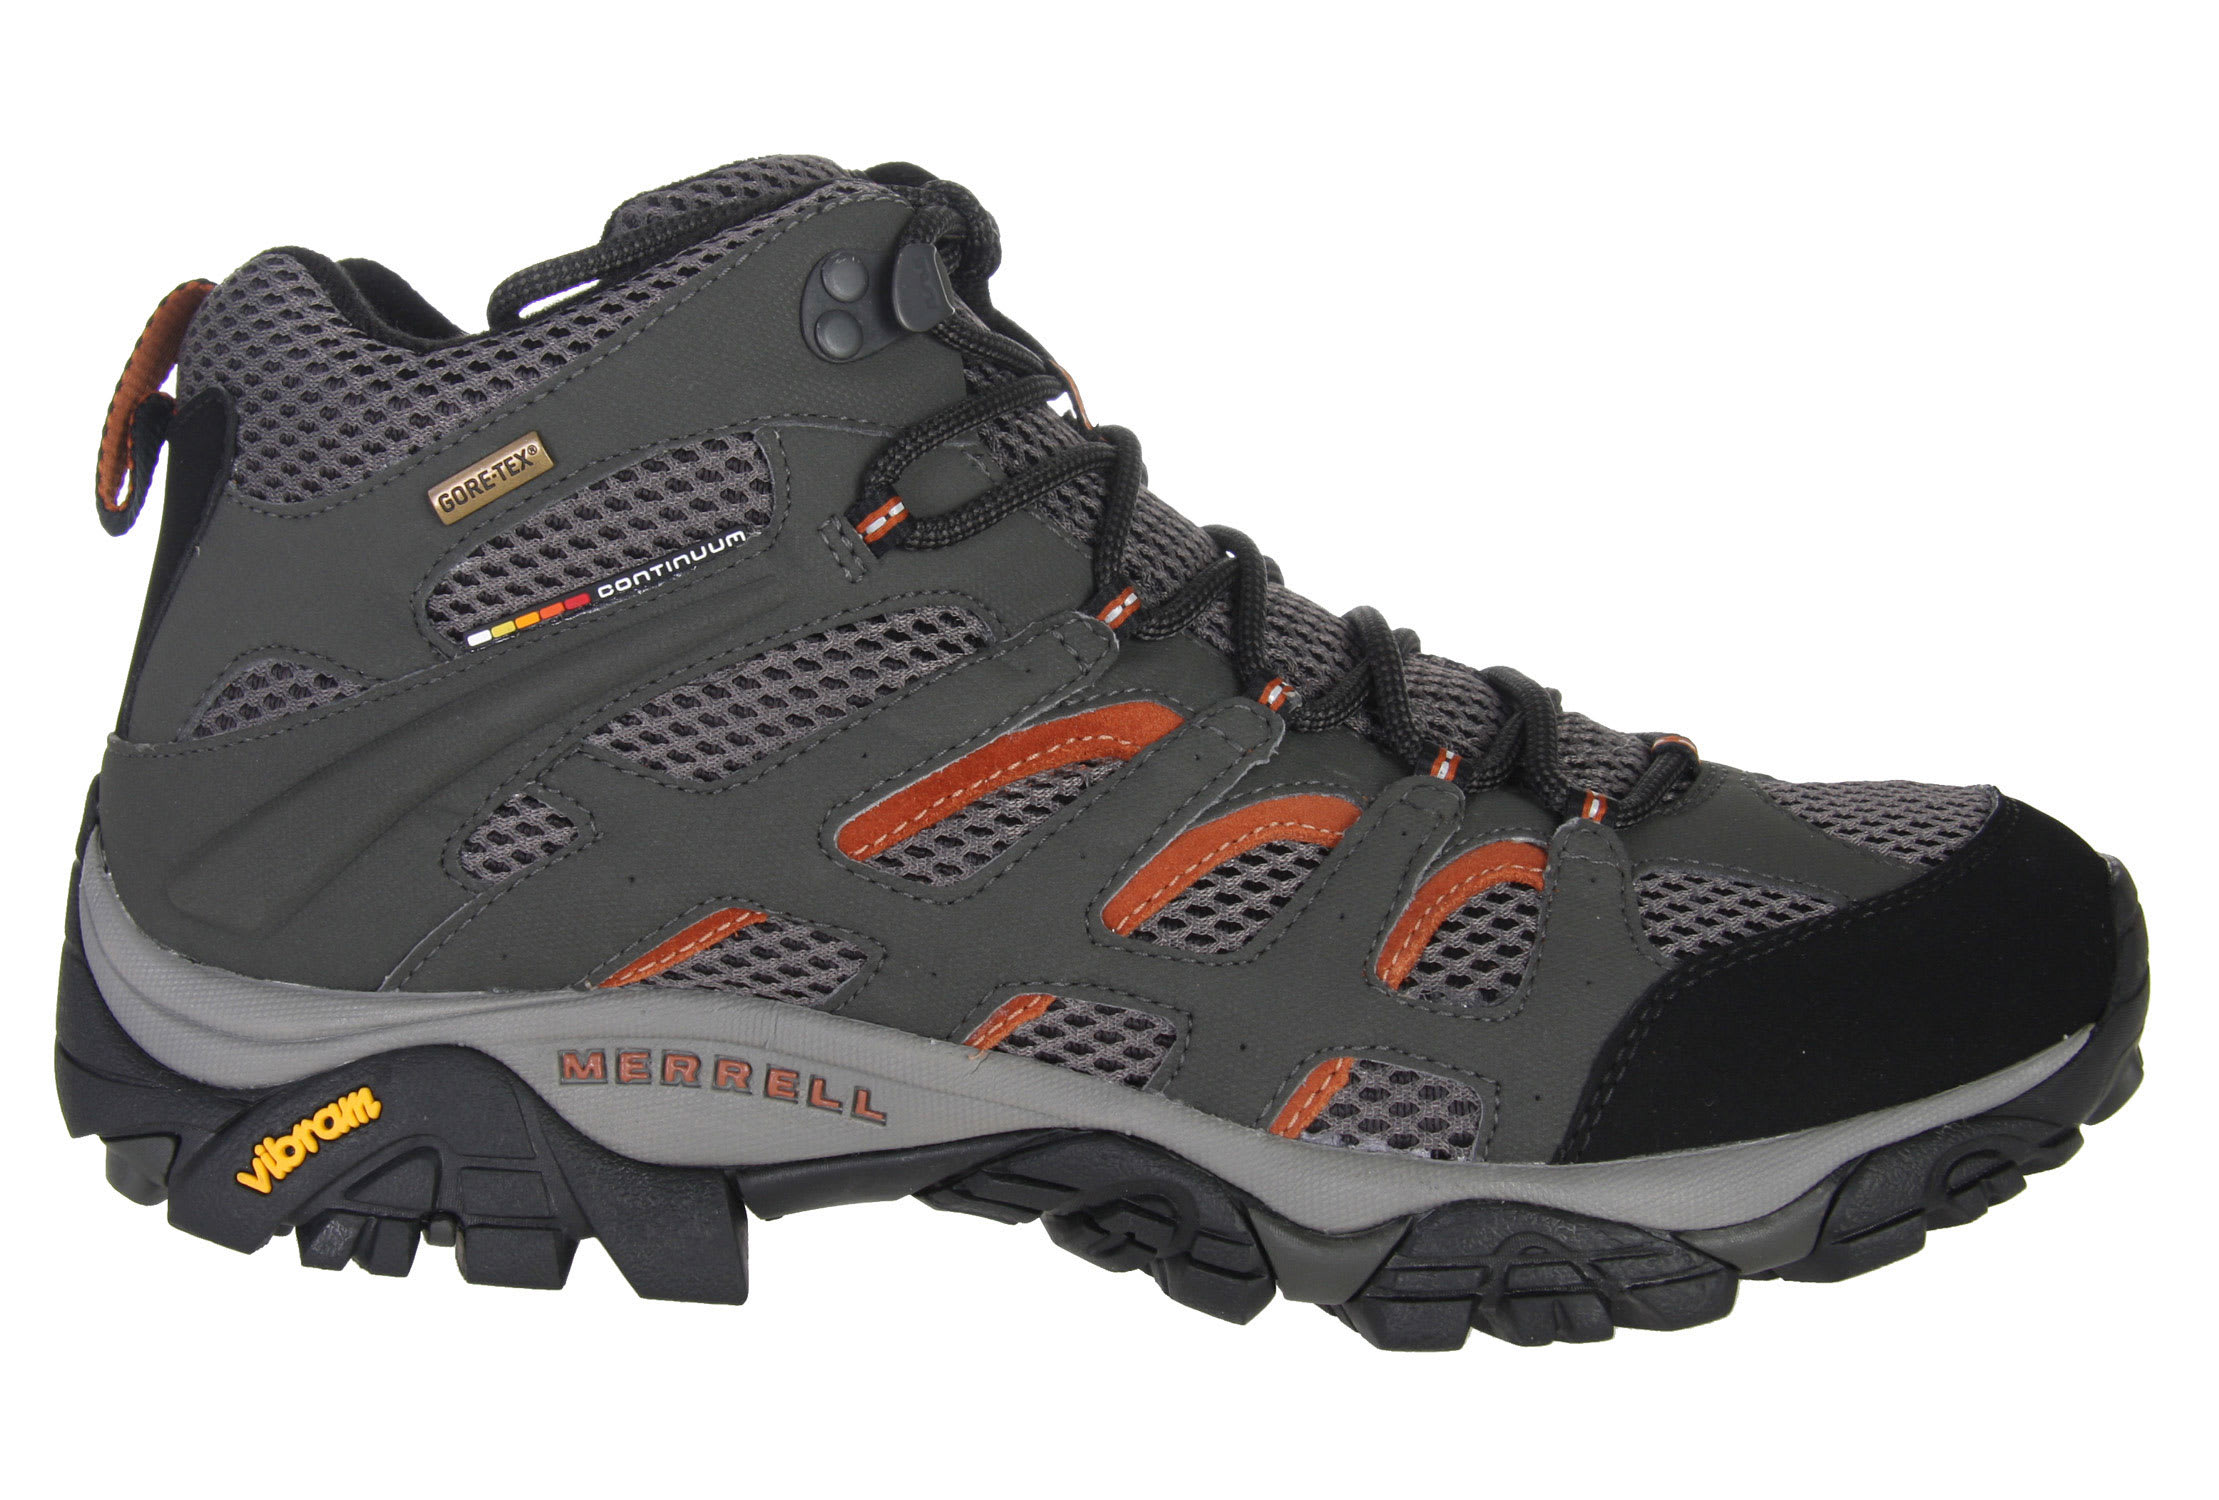 merrell continuum vibram ortholite video